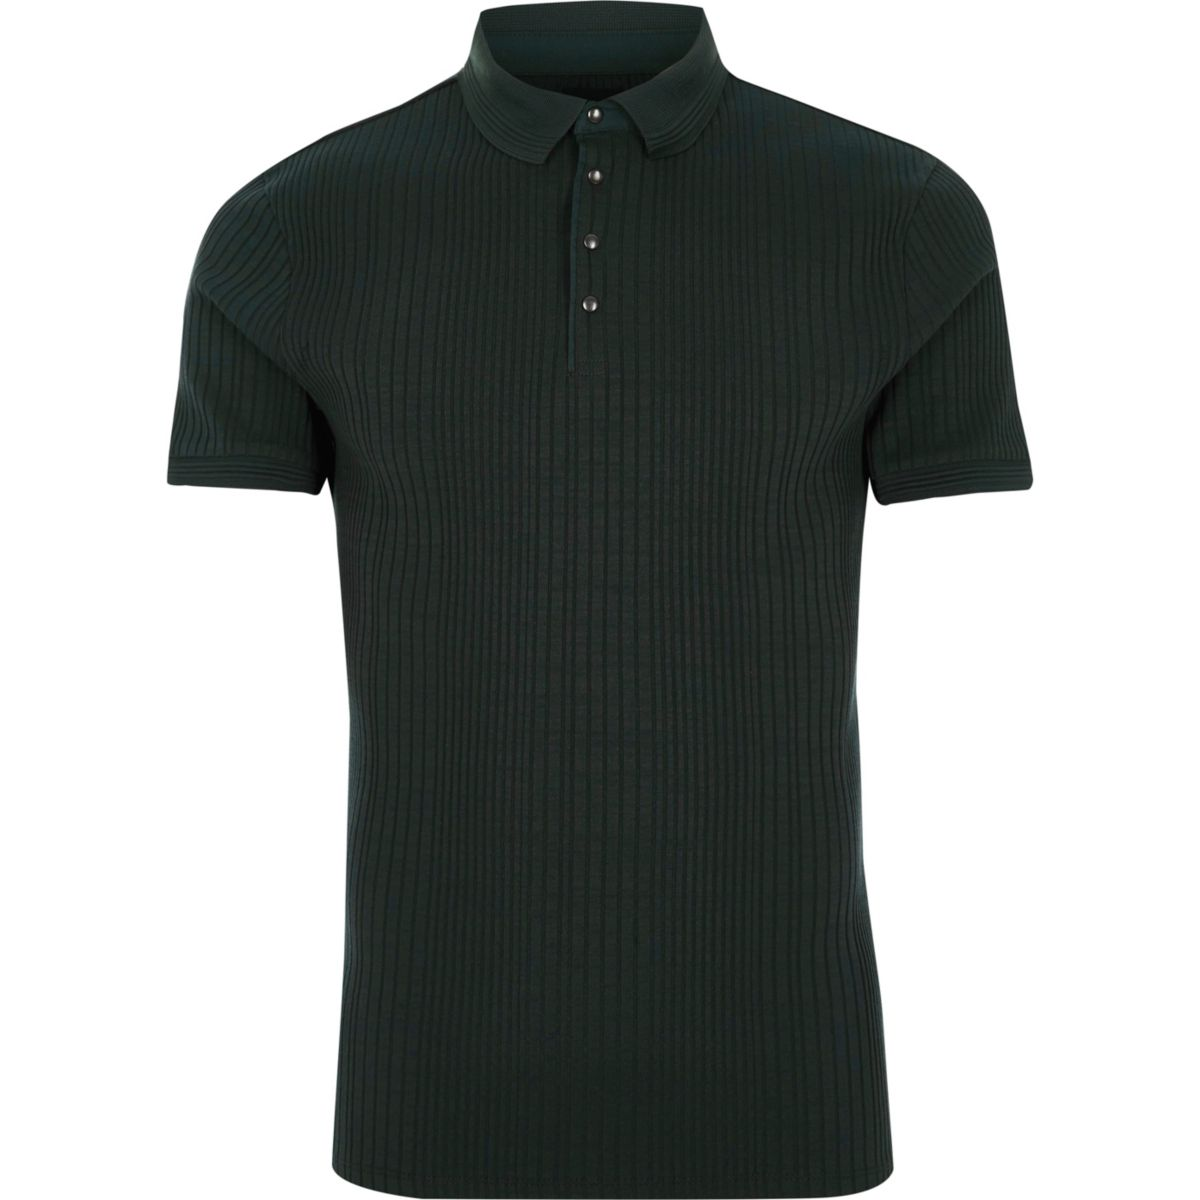 Dark Green Ribbed Muscle Fit Polo Shirt Polo Shirts